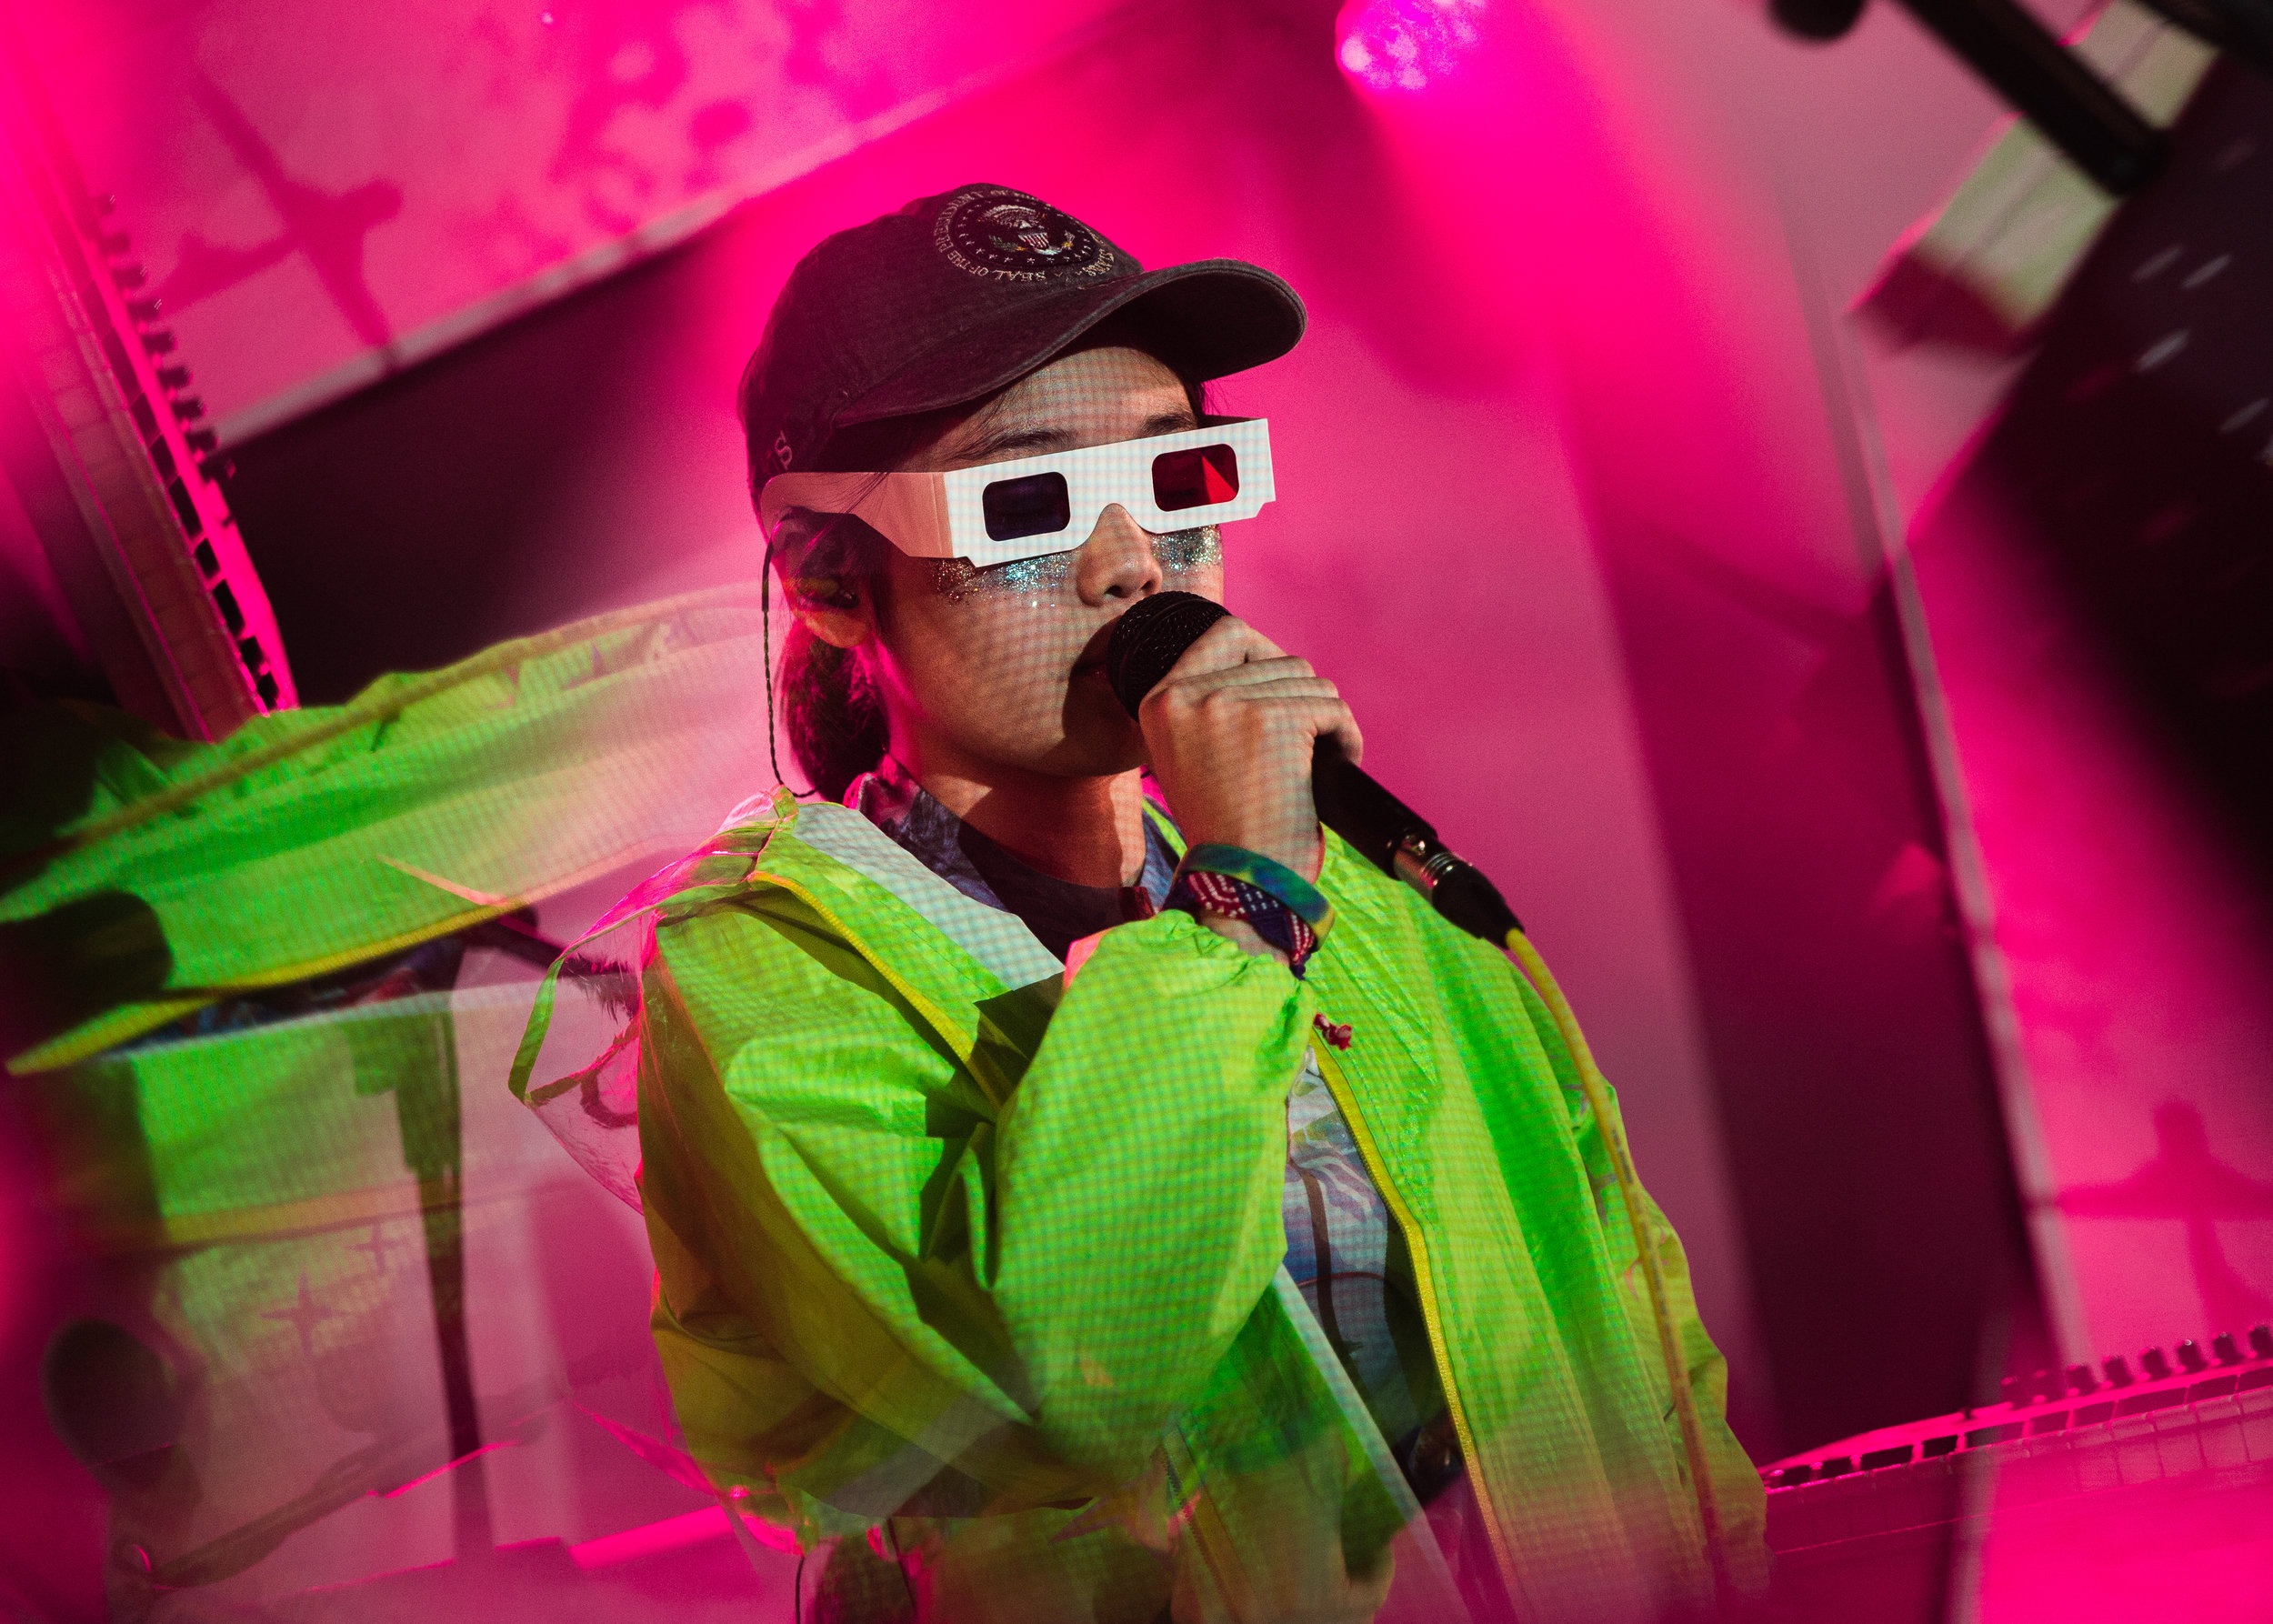 171217-kirby-gladstein-photography-Superorganism-concert-Moroccan-Lounge-Los-Angeles-8074.jpg